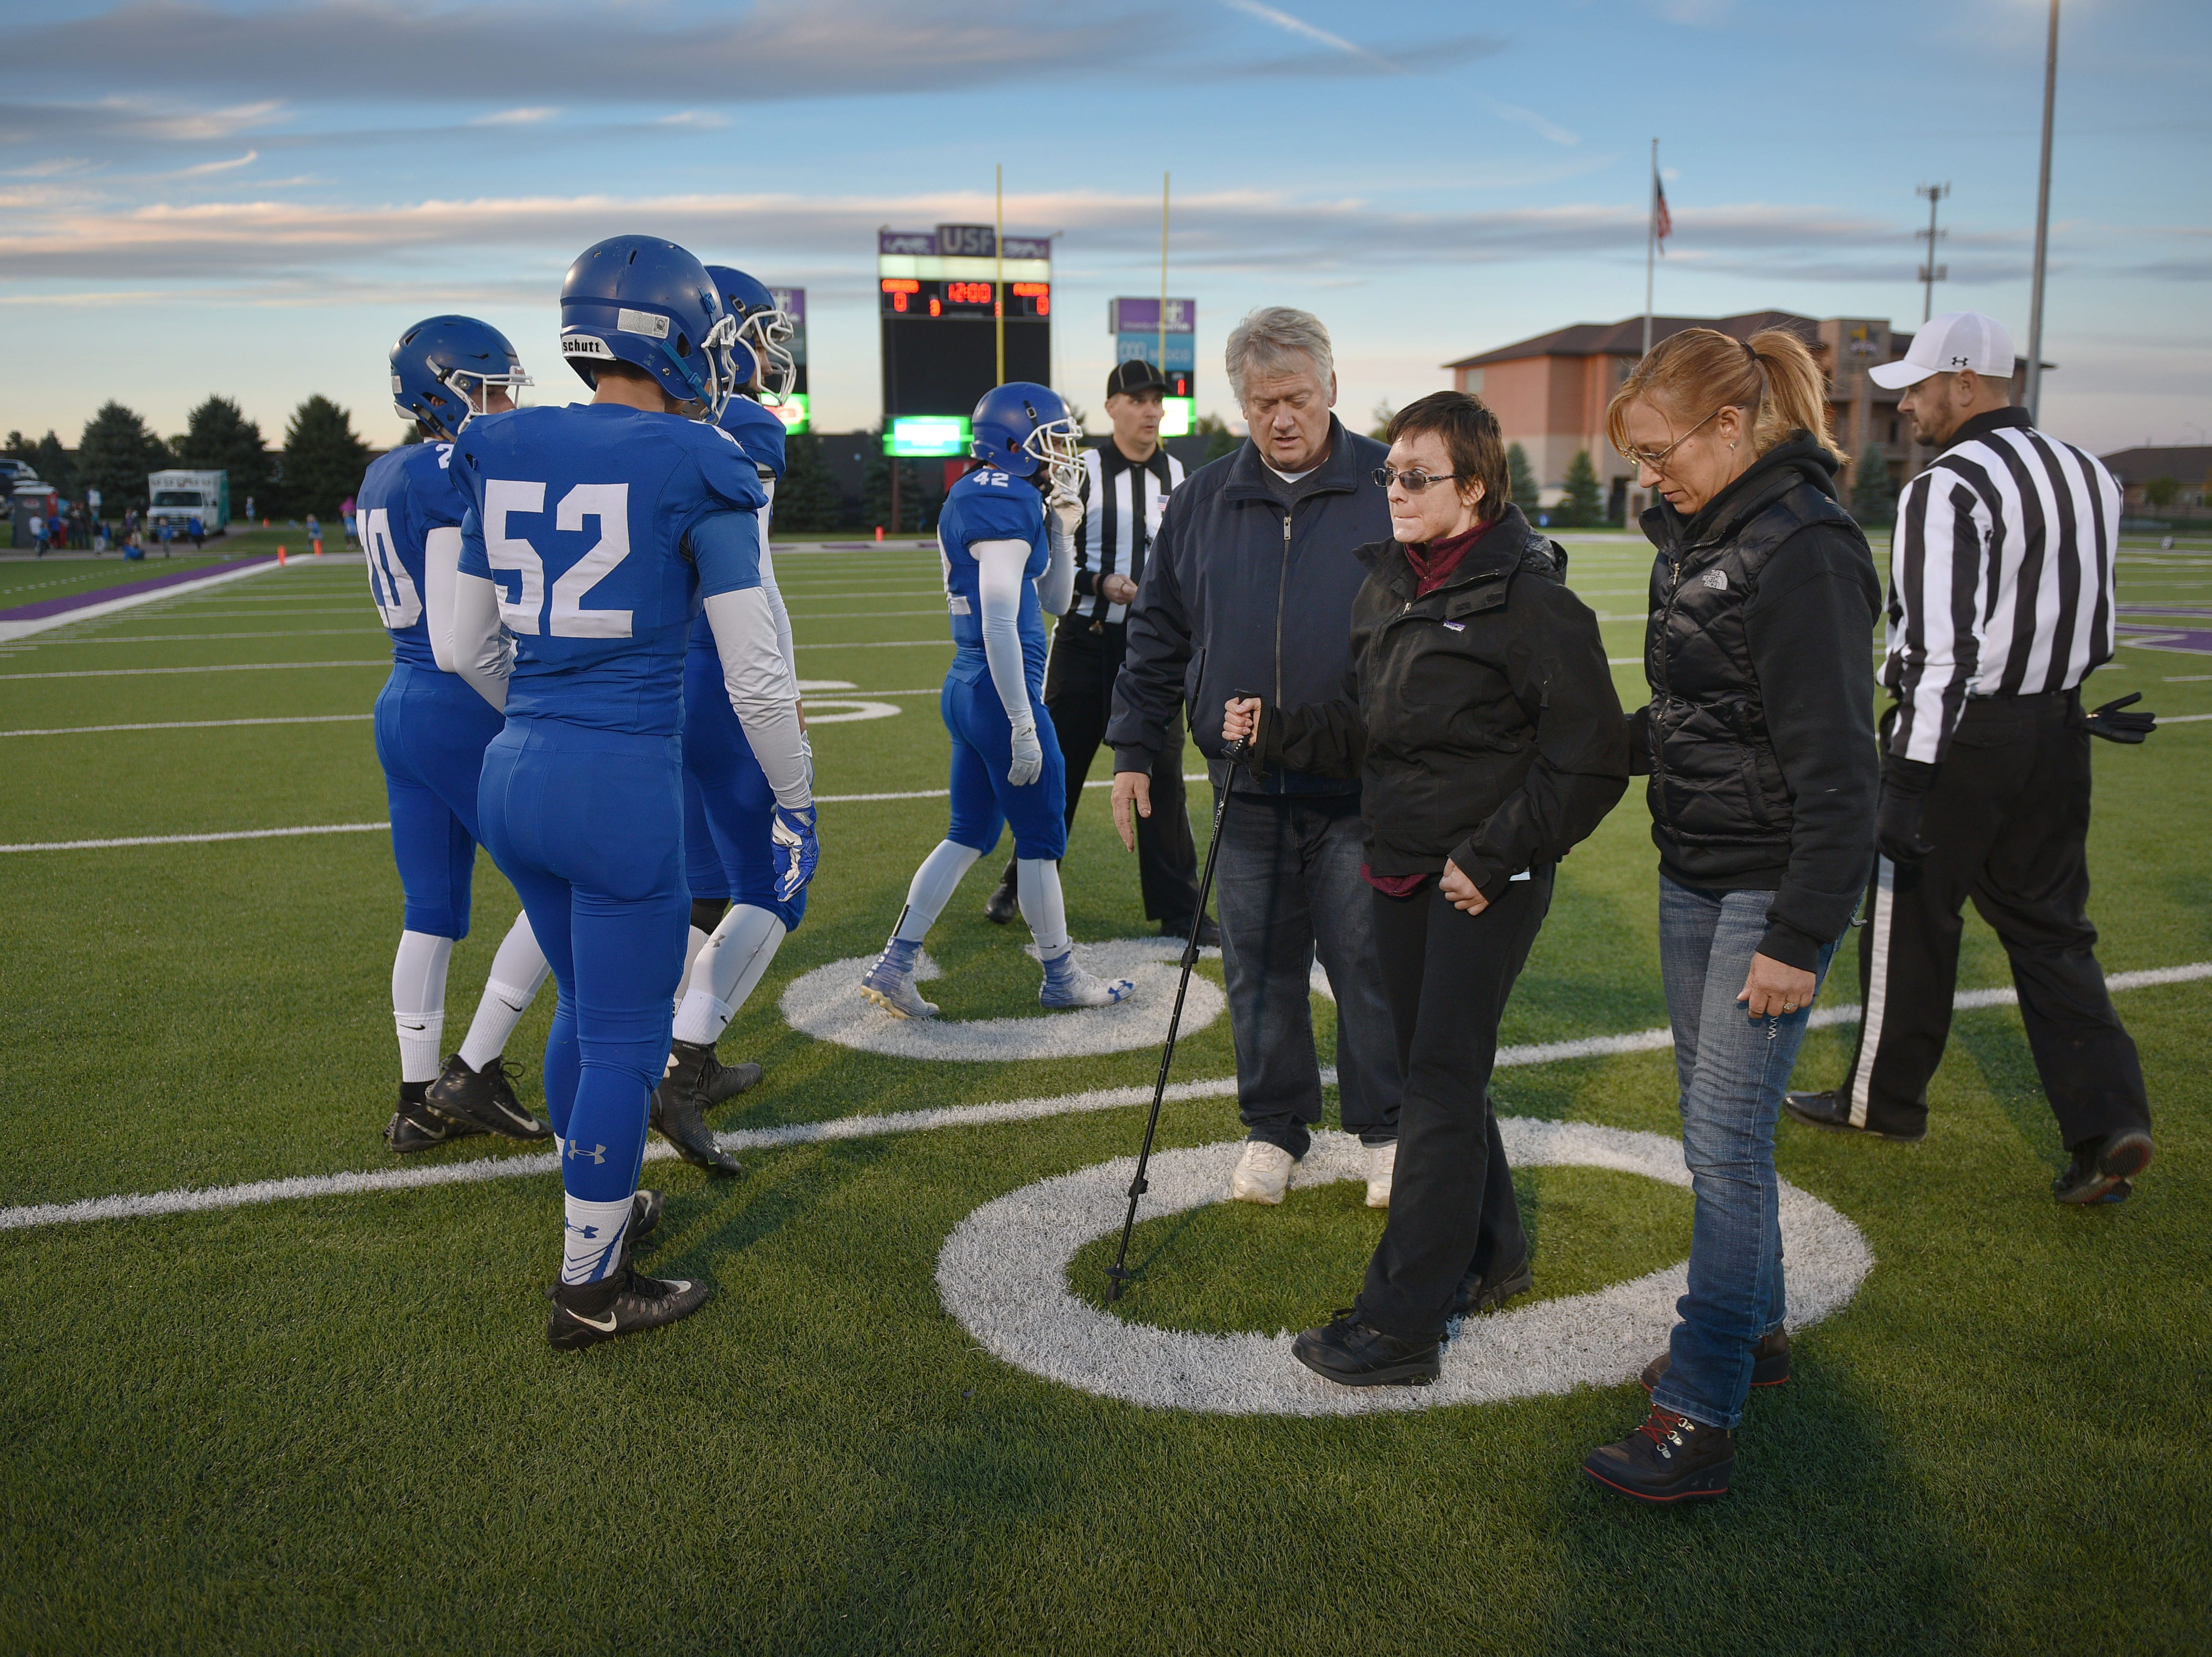 Ashley Van Hemert walks off the field after the coin toss for the Sioux Falls Christian game, Friday Sept. 28, at Bob Young Field University Of Sioux Falls Stadium.